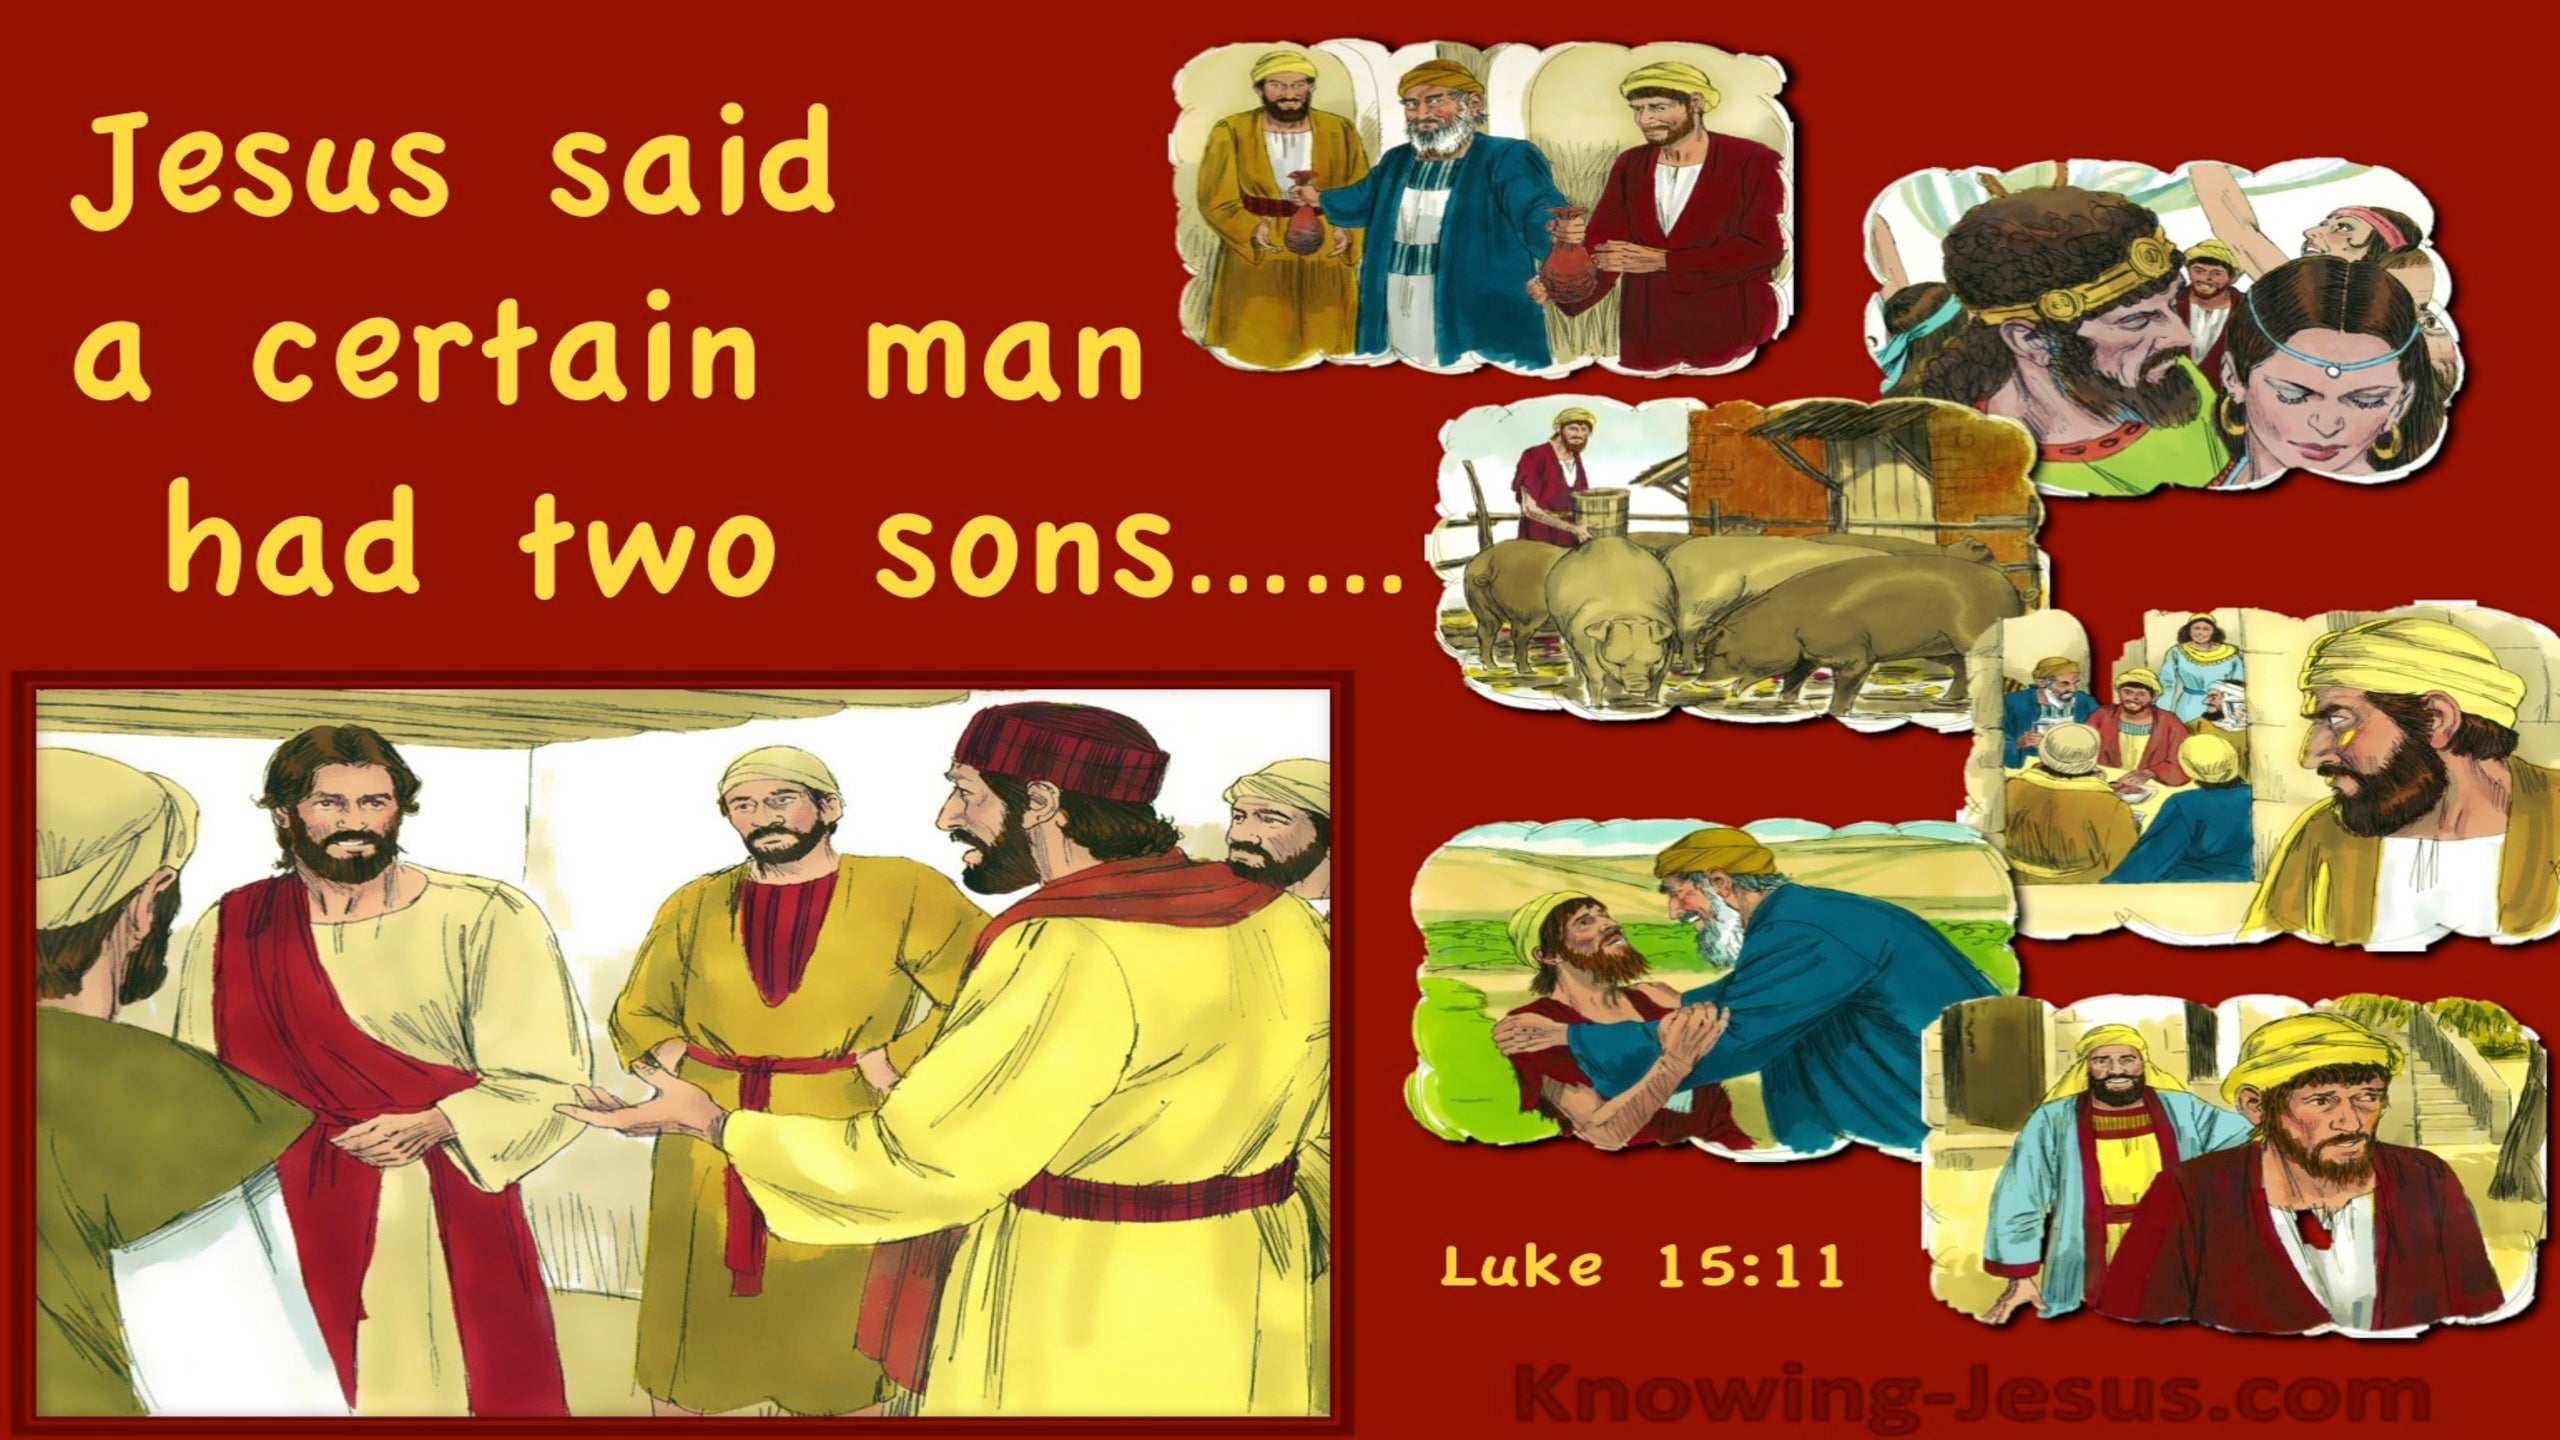 Luke 15:11 A Certain Man Had Two Sons (red)